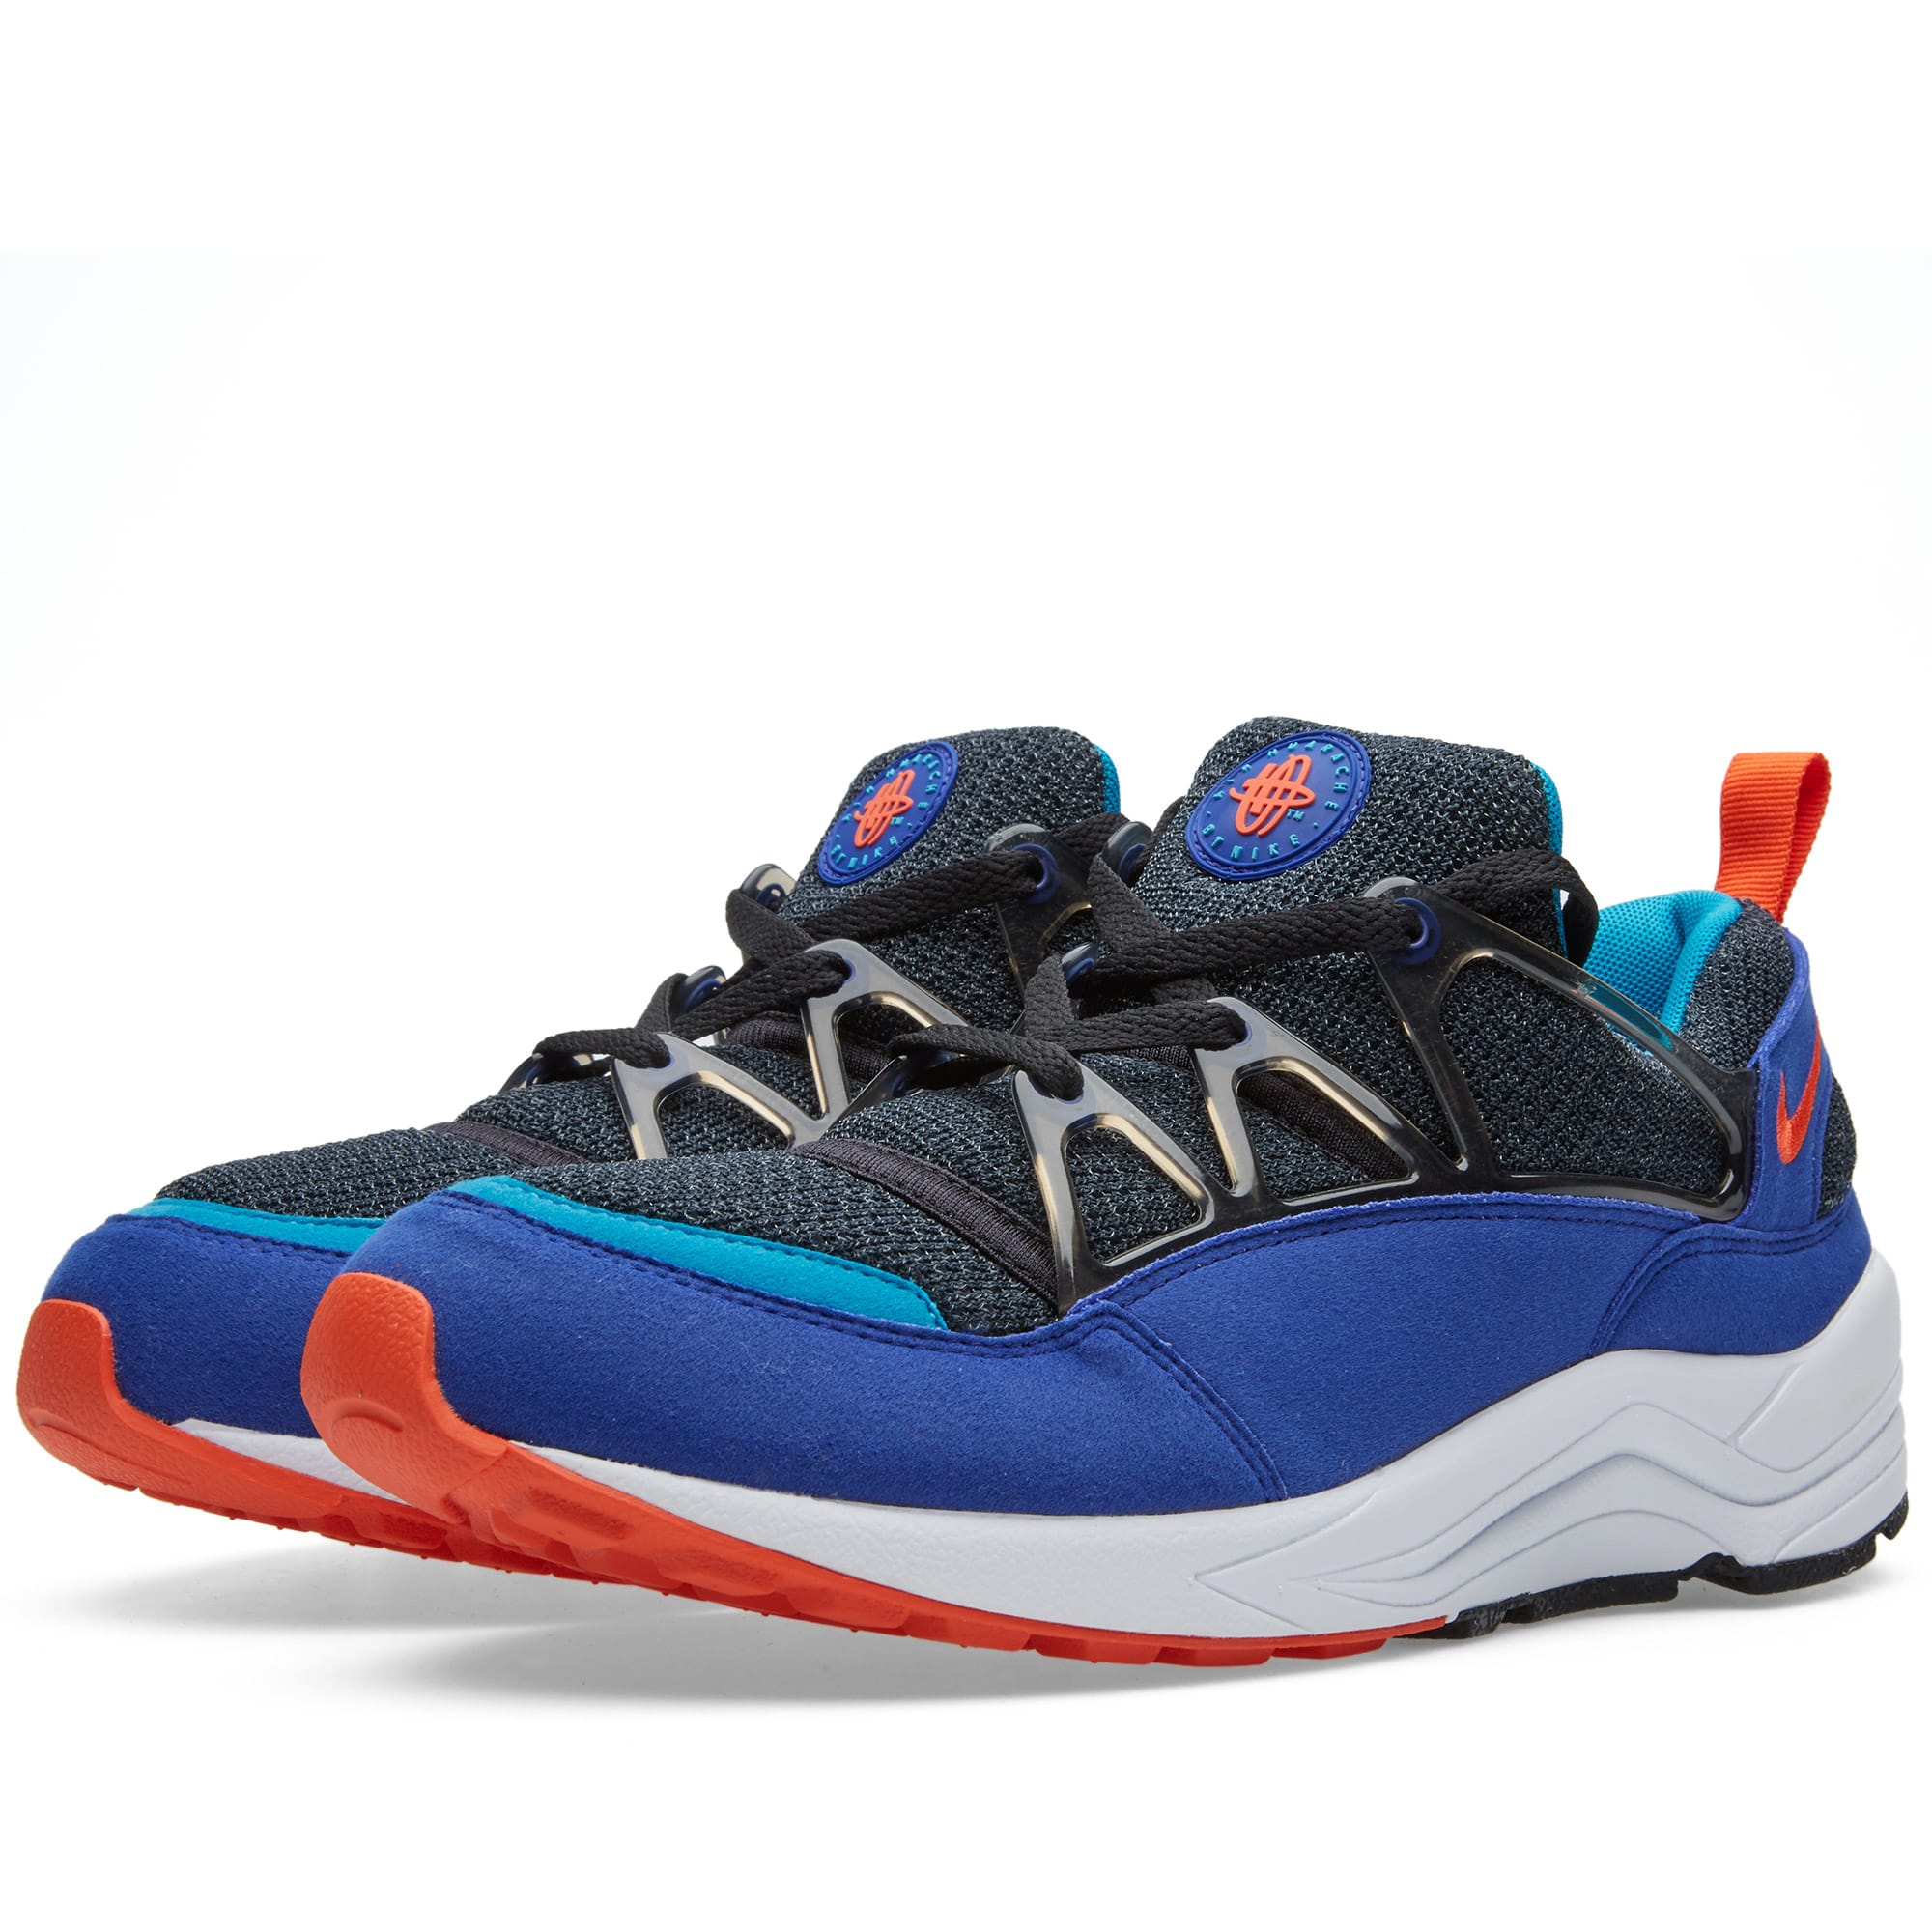 ffc73ba81cb13 Nike Air Huarache Light OG  Ultramarine  Concord   Team Orange